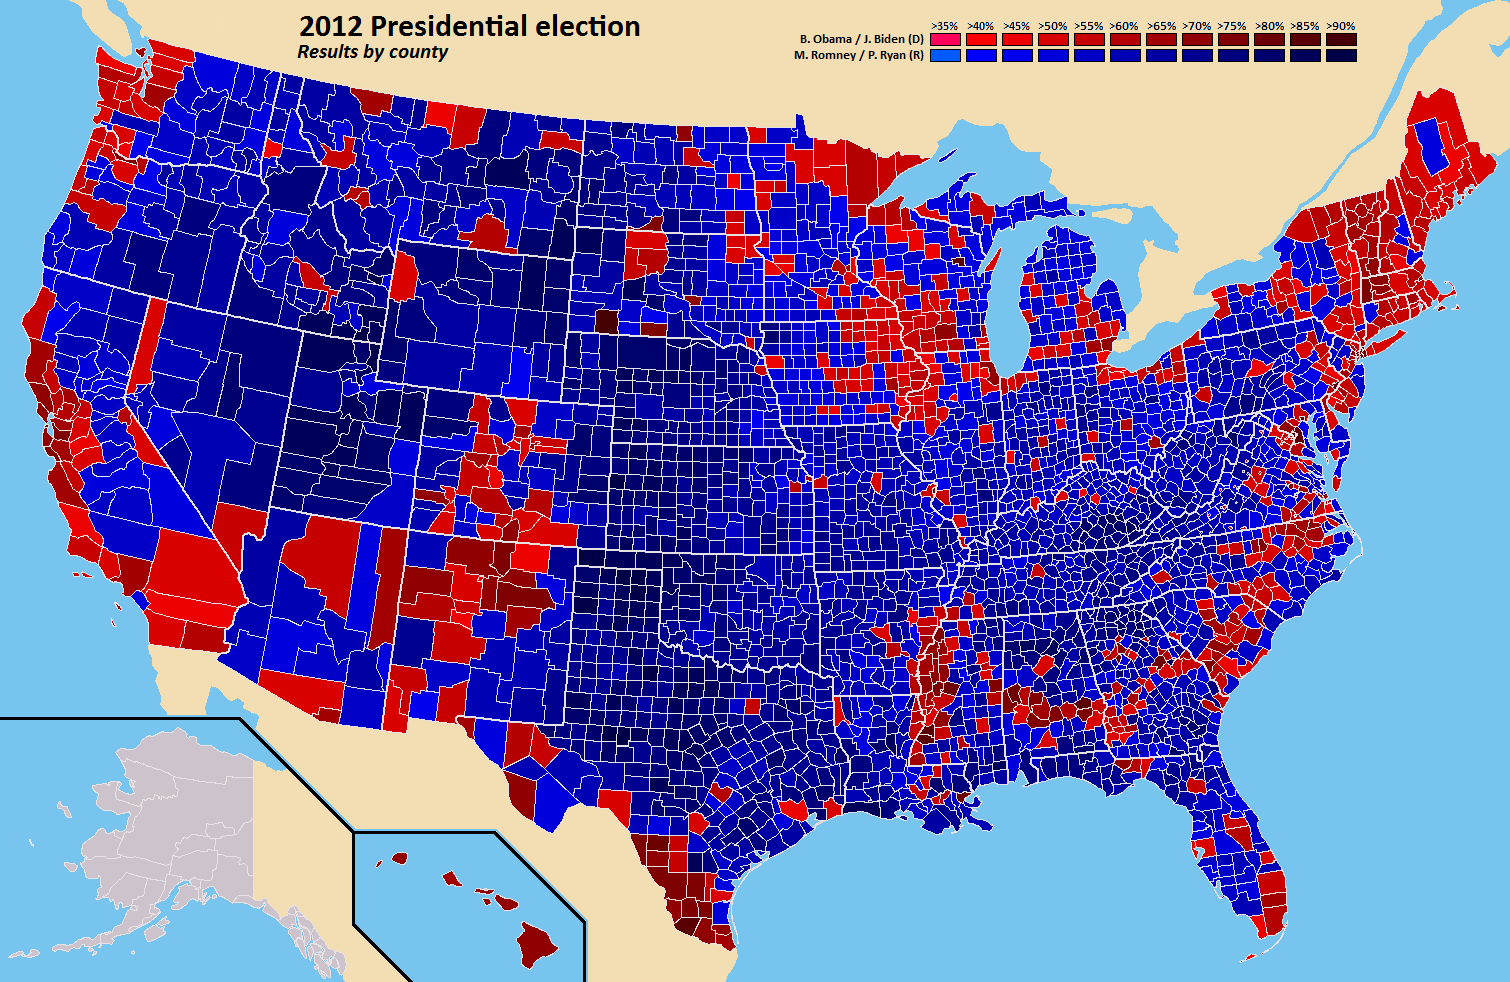 US Murder Map Looking For Visual Correlations Al Fin Next Level - 2016 election results us map by county